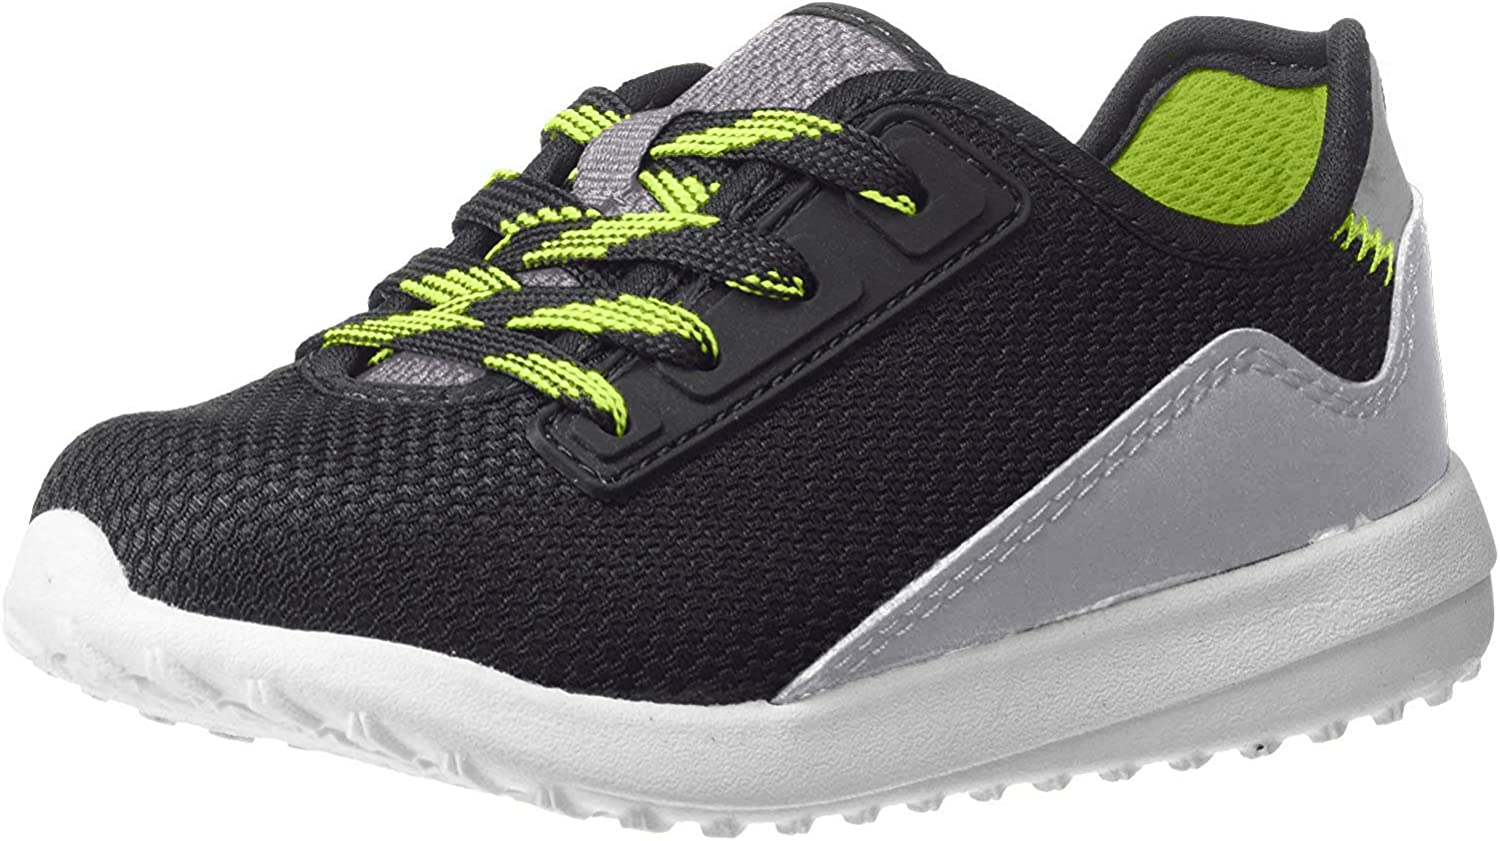 Very popular Carter's Kids Boy's Max 63% OFF Paow Mesh Athletic Bungee Laces Sneaker with